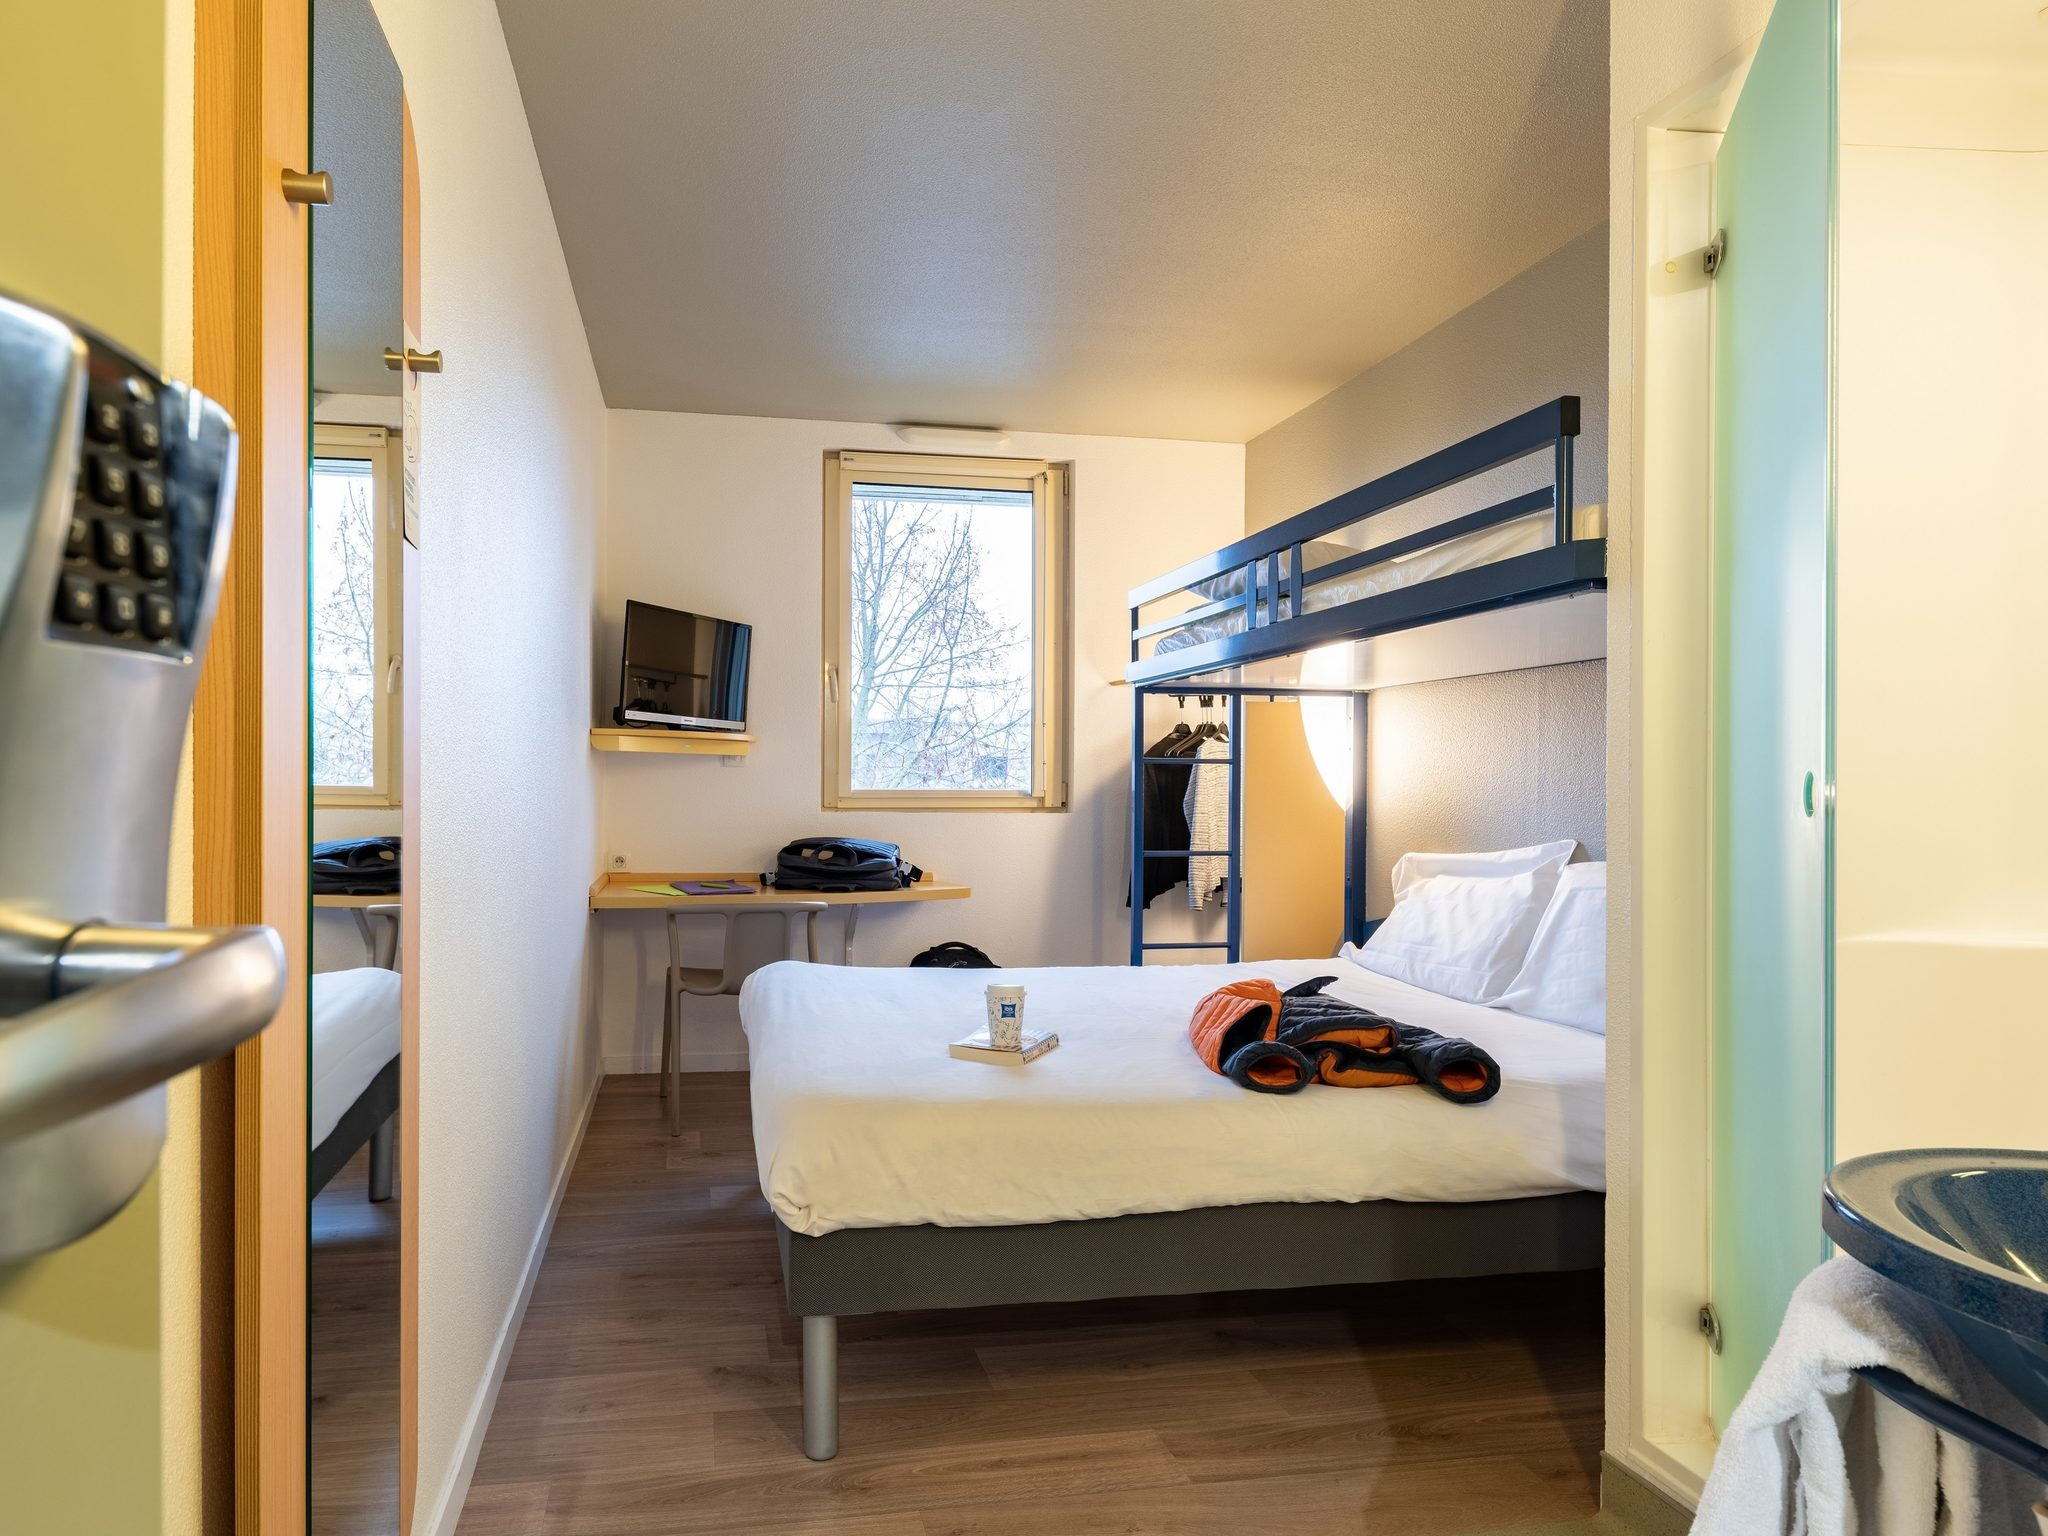 hotel in bourg en bresse ibis budget bourg en bresse. Black Bedroom Furniture Sets. Home Design Ideas